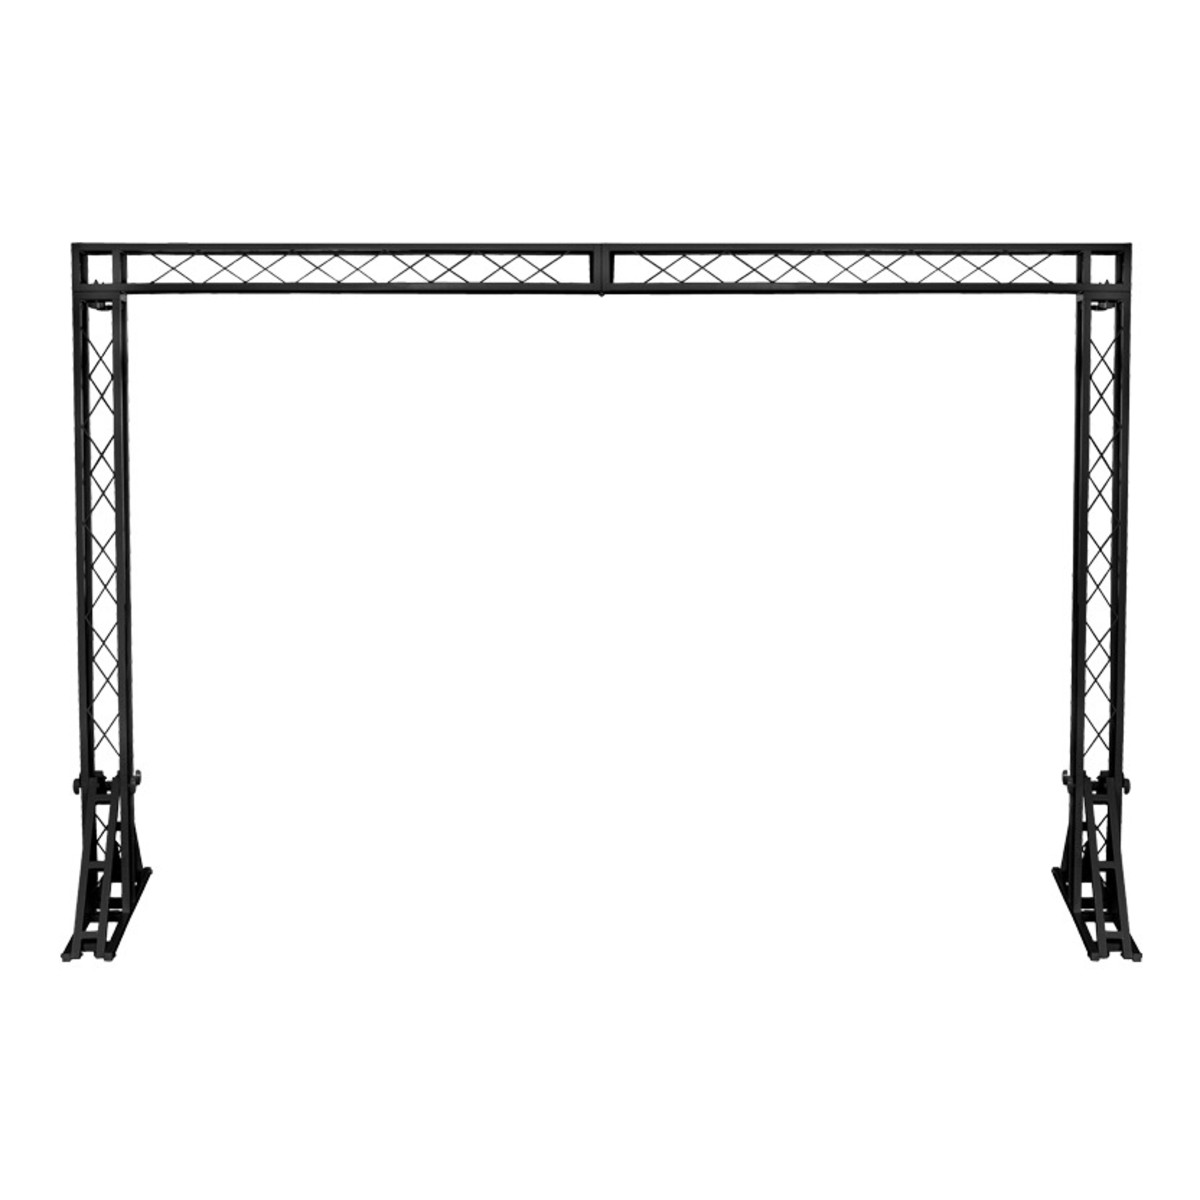 Equinox 3 X 2m Truss System Black At Gear4music